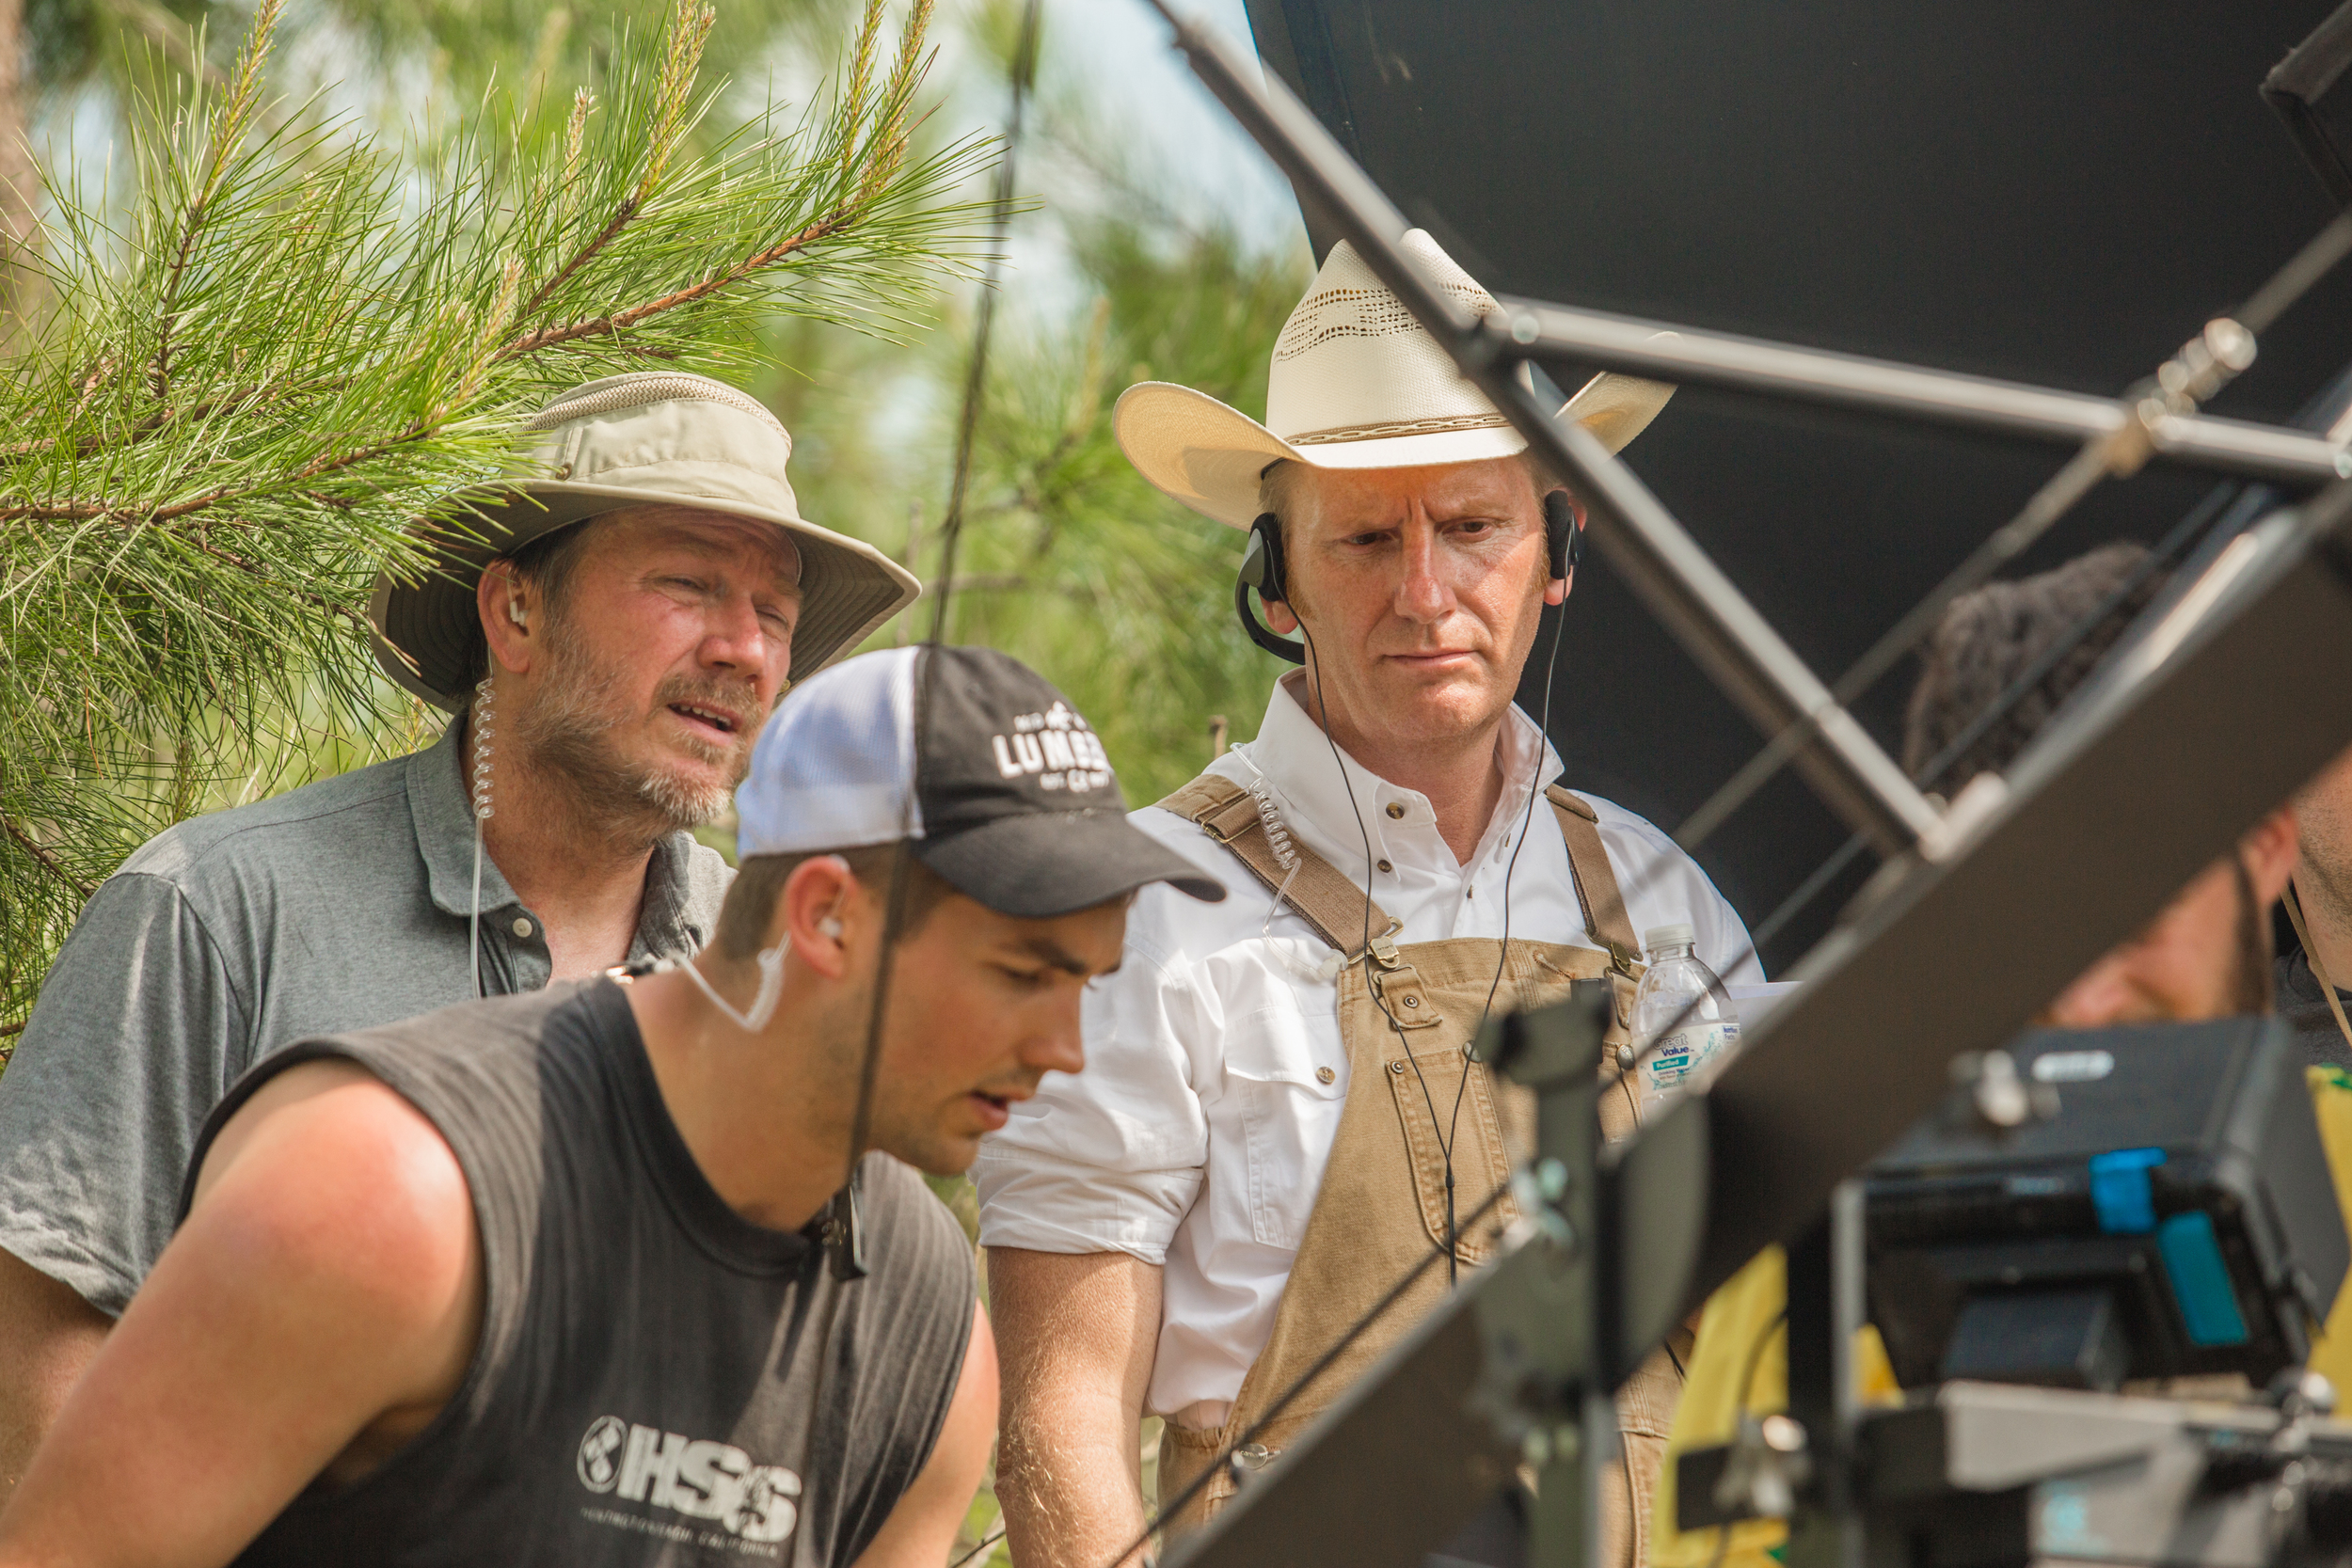 Bryan Allen (far left) and Rory Feek (far right) have worked together on the Joey+Rory music so expect to see that magic and talent seen in those to come to life on the big screen (and shout out to Nick whop can fly a jib like no other)!